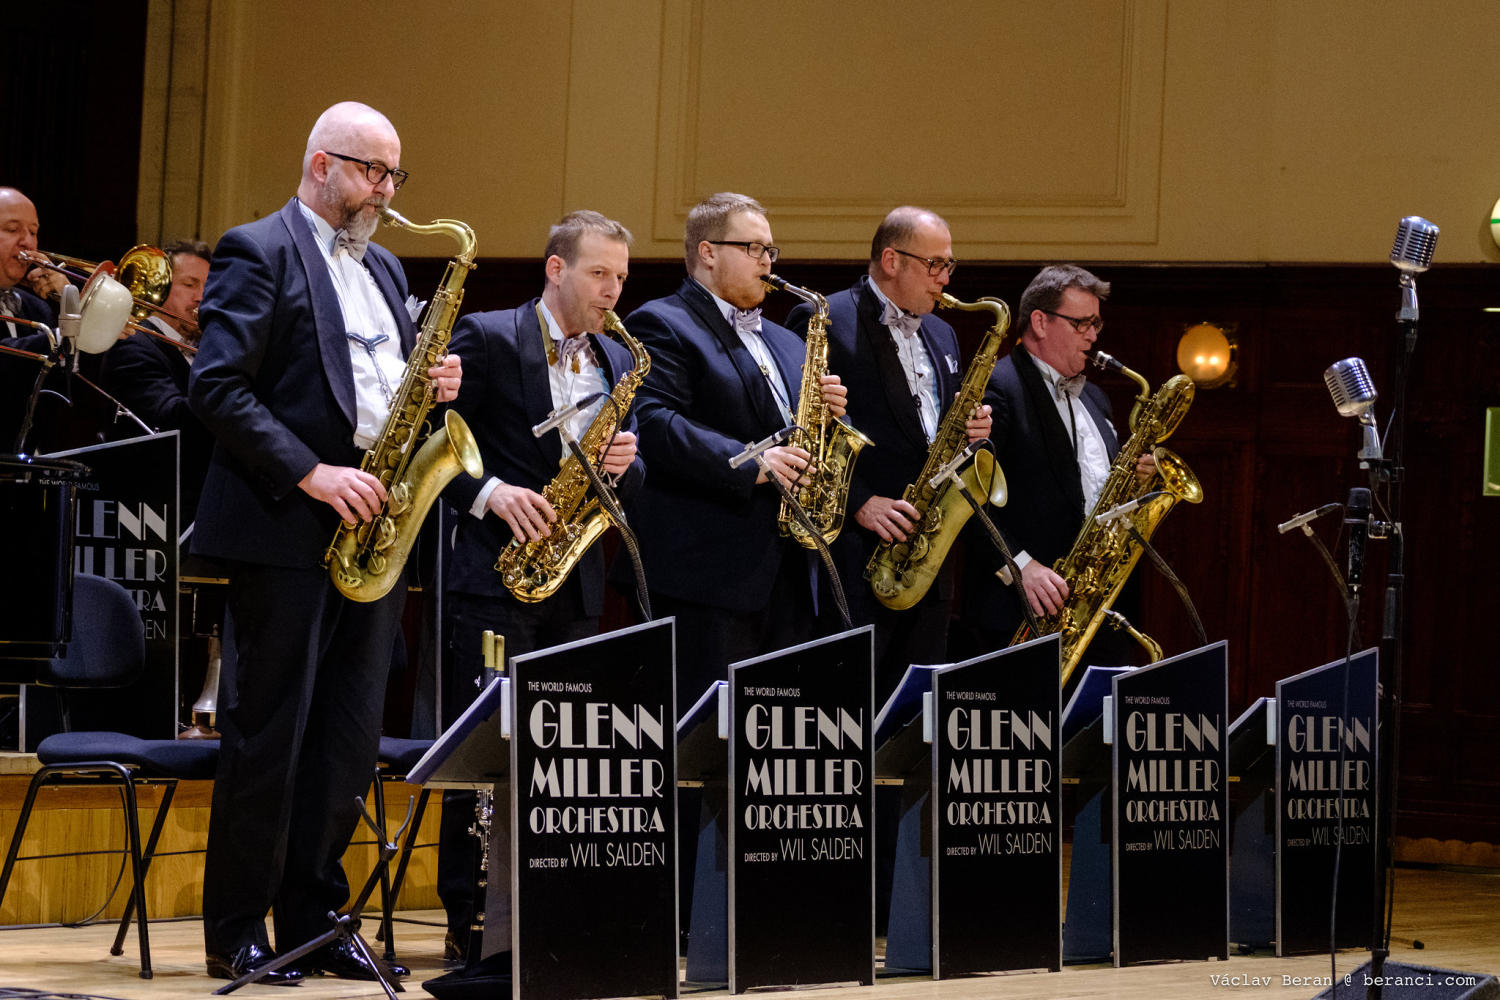 picture GLENN MILLER ORCHESTRA Tour 2019